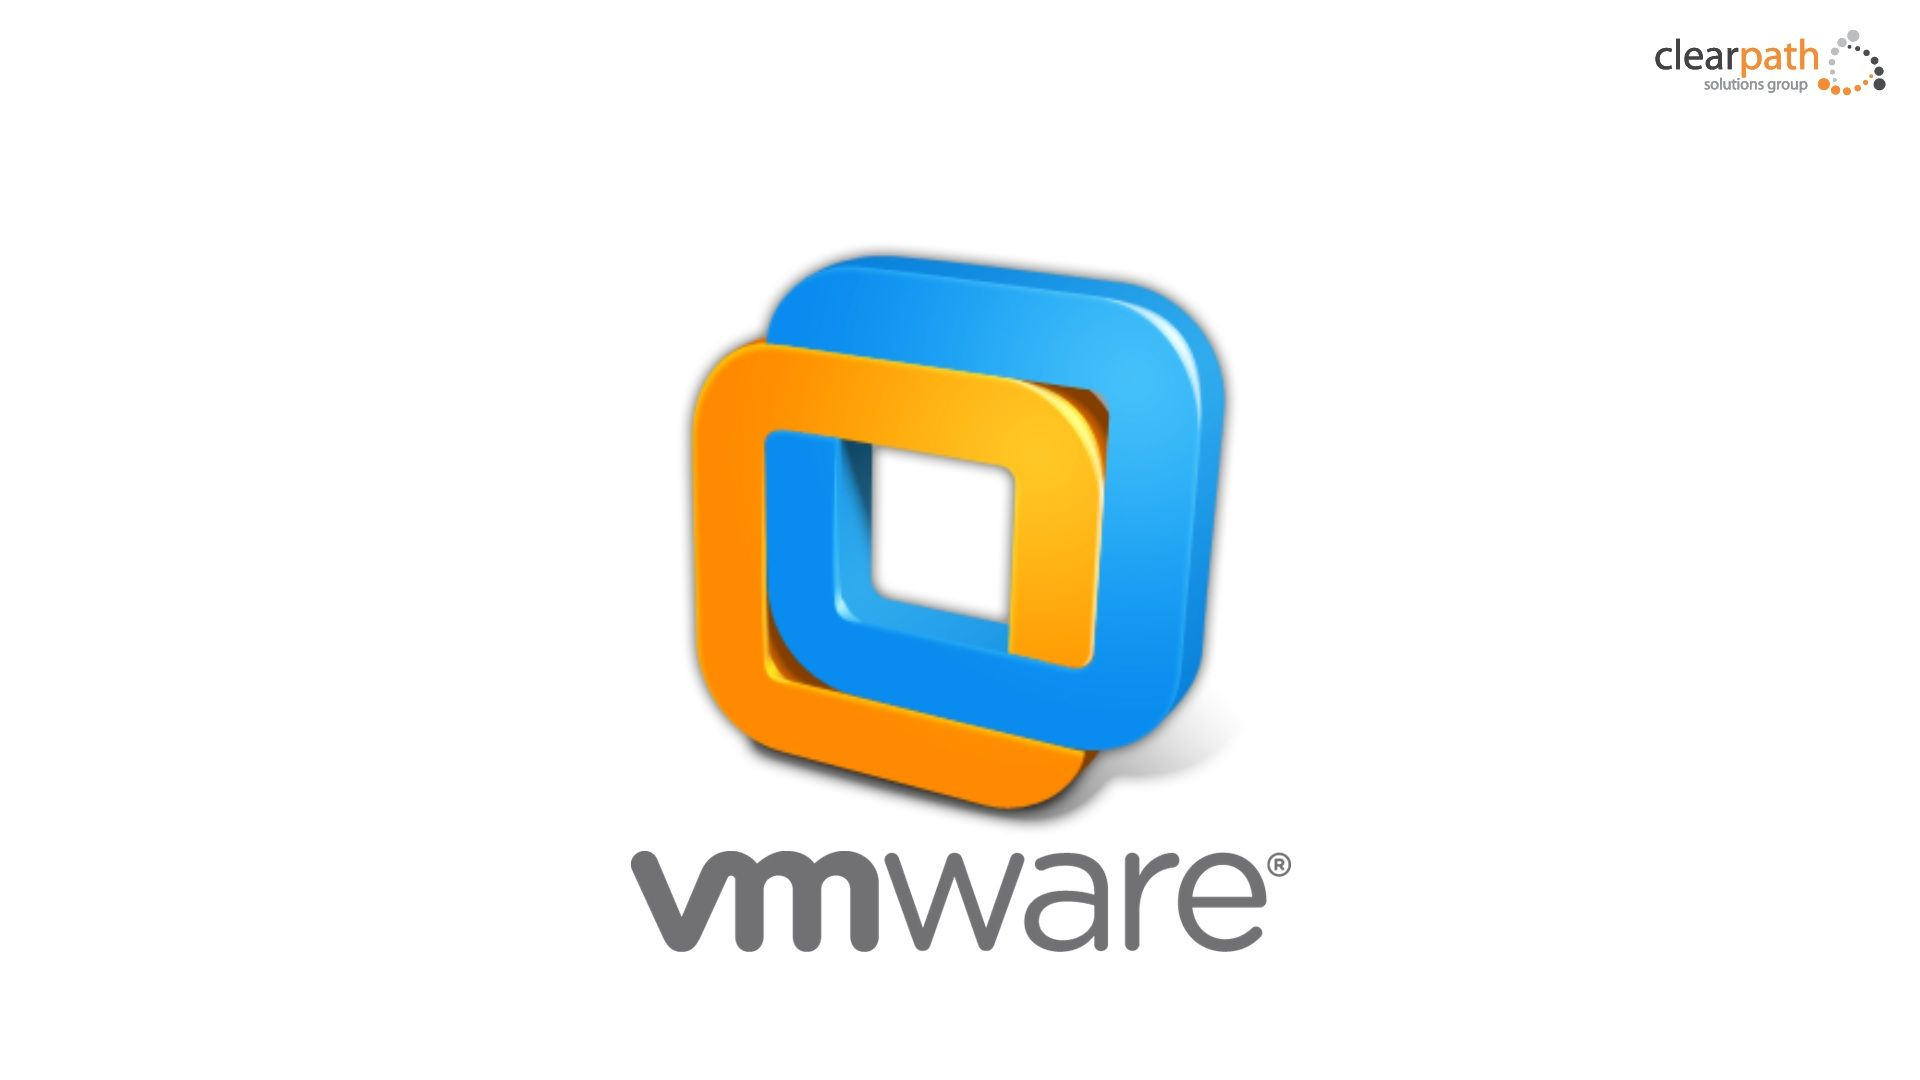 This Certification Validates The Ability To Install Configure And